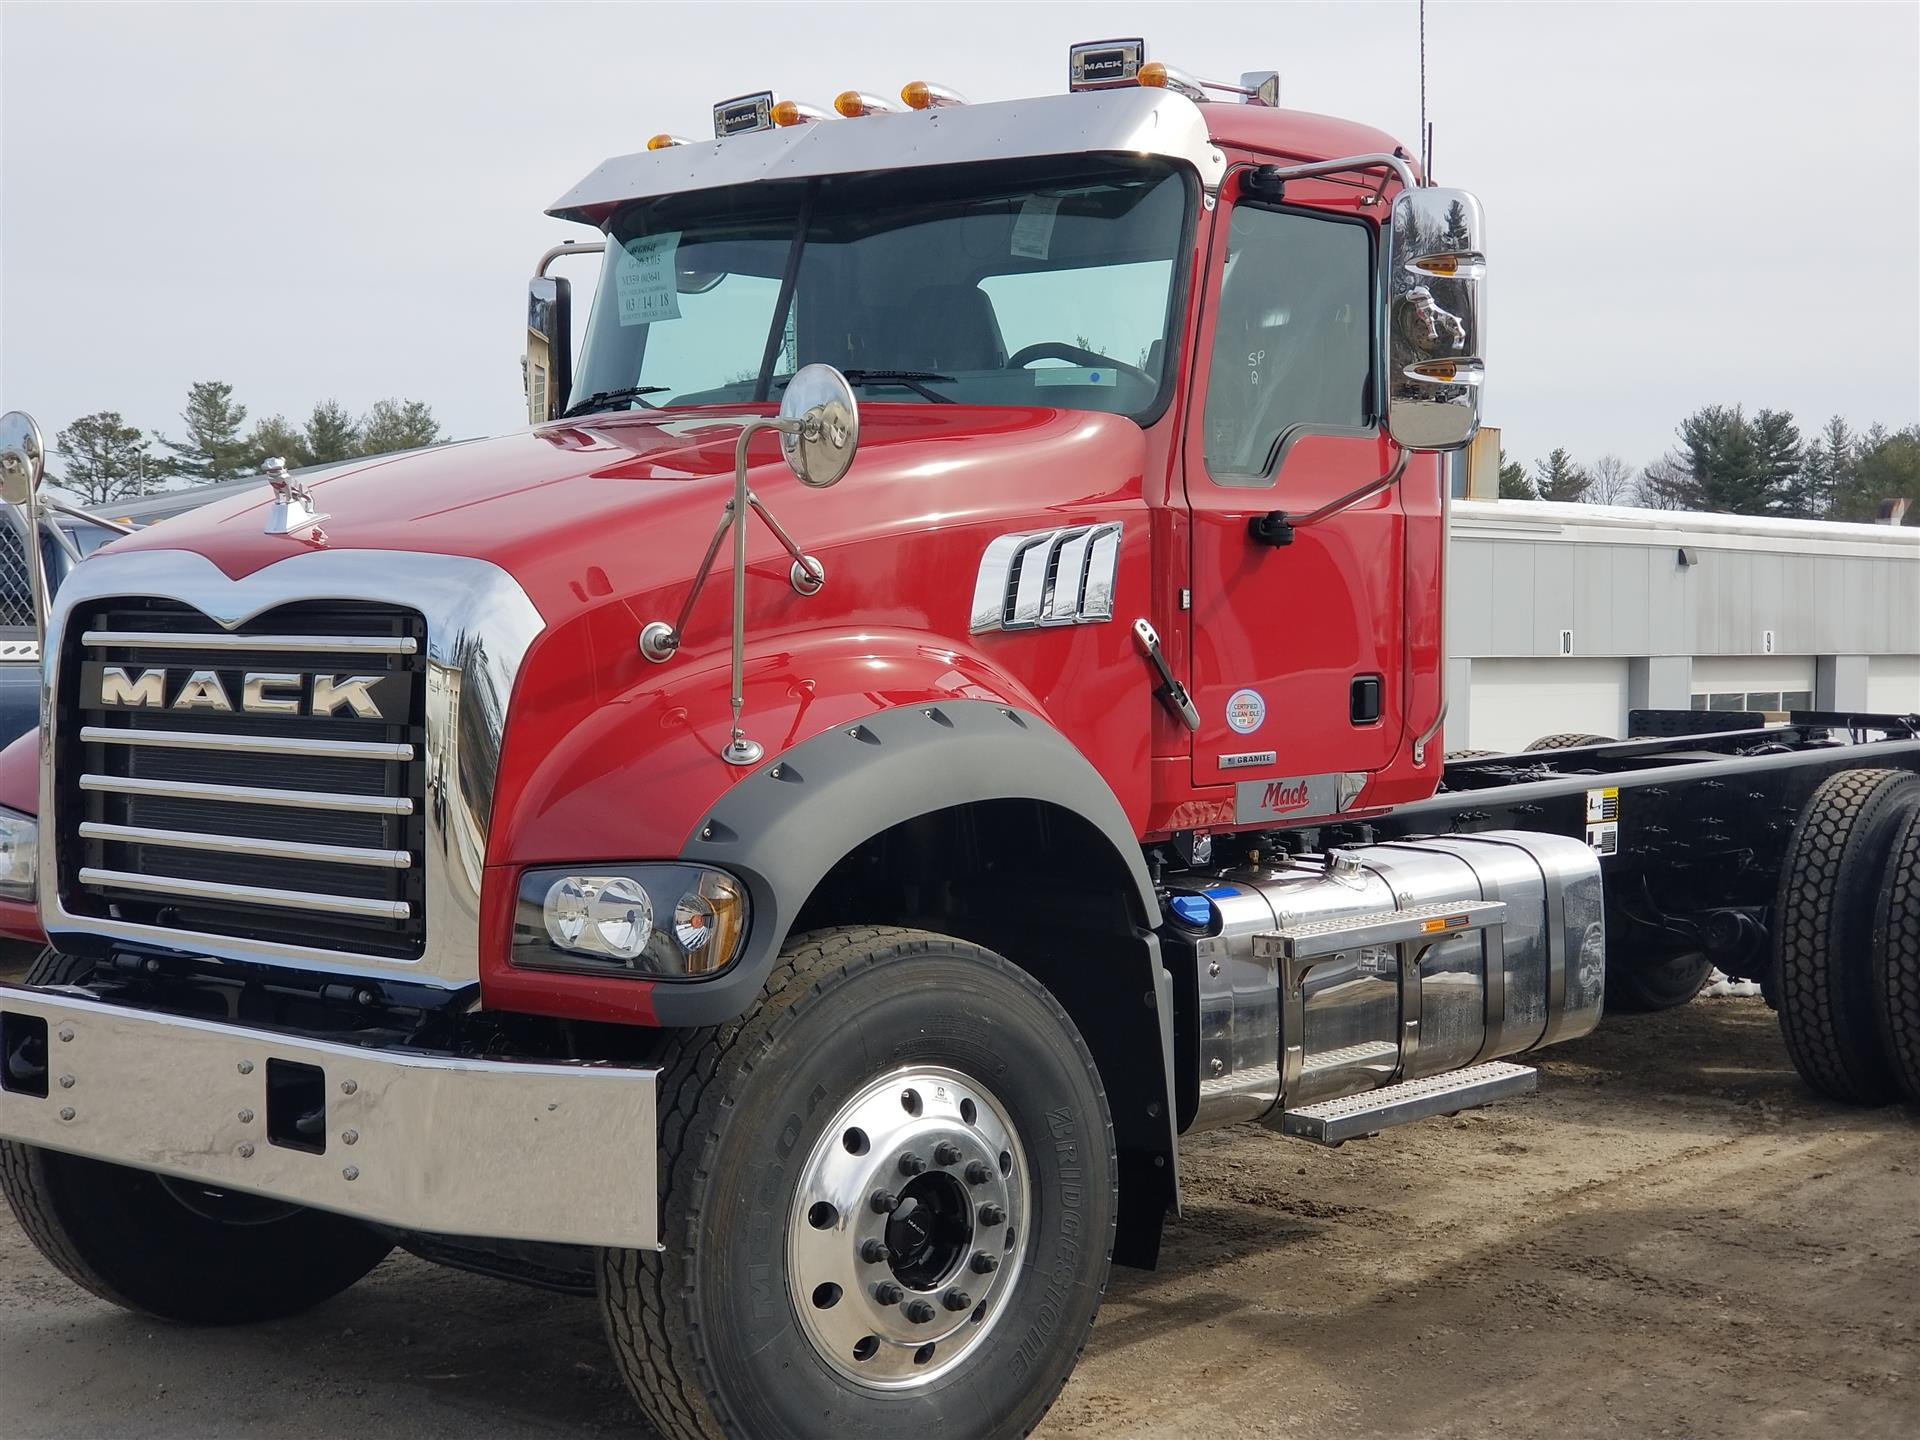 2019 Mack Granite Gu713 Cab Chassis Truck For Sale 561059